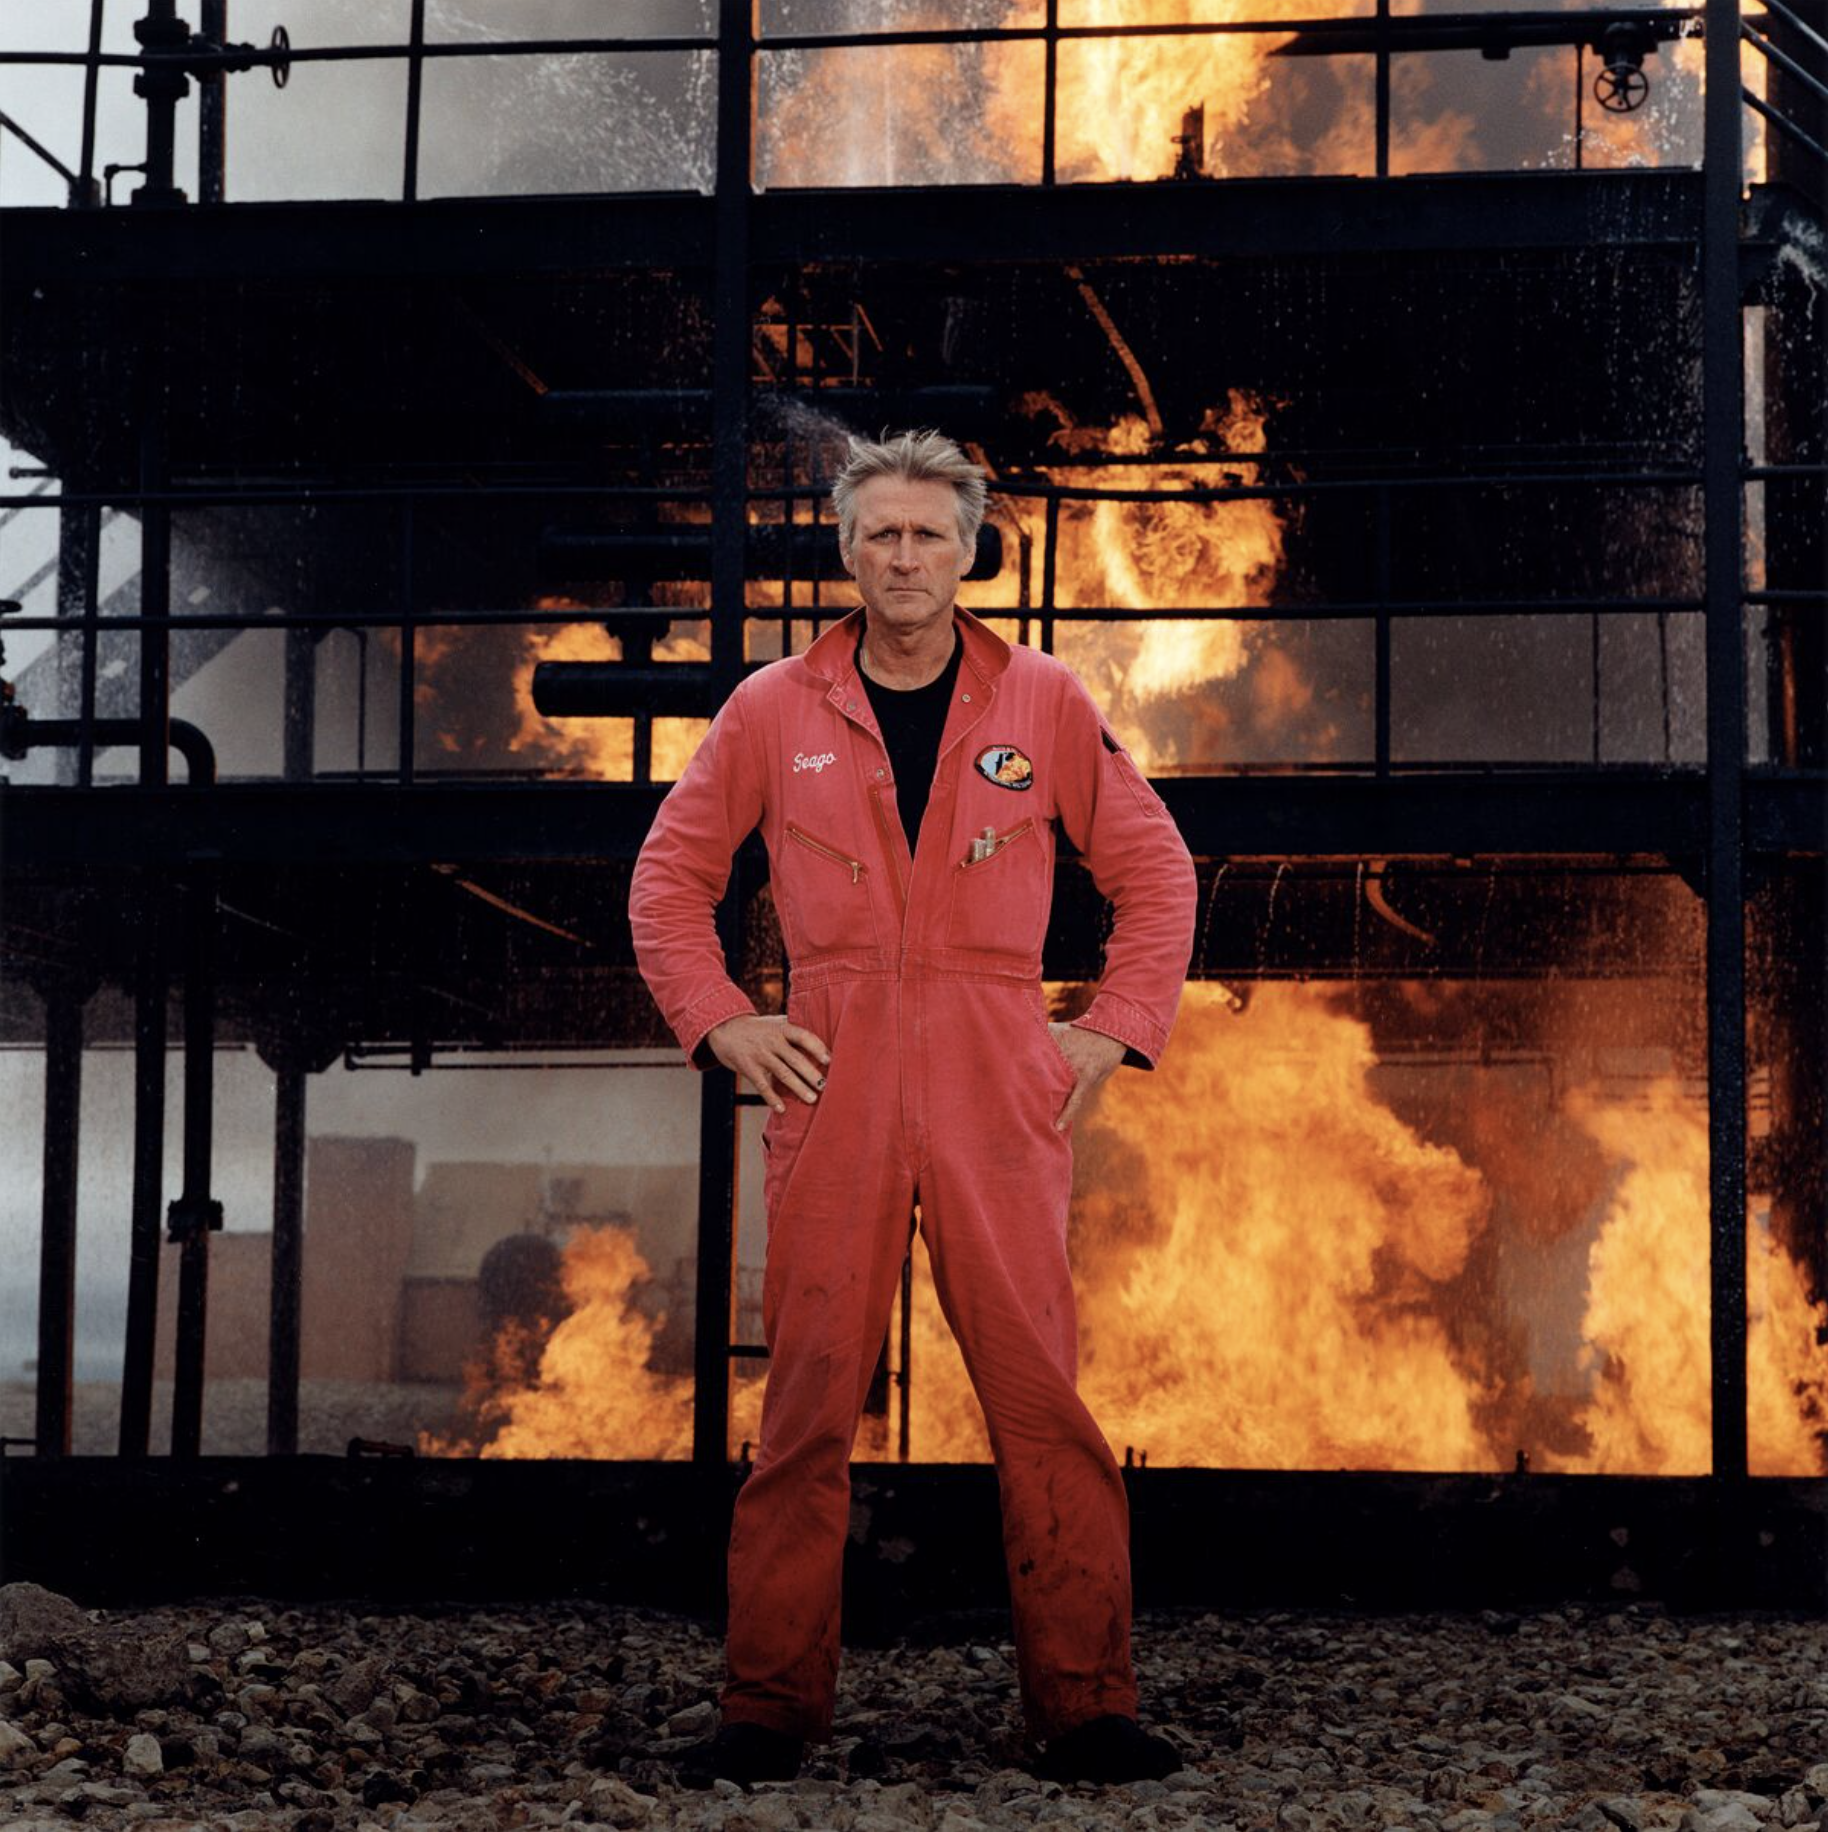 Oil-well Blowout Specialist, Houston, Texas, 2003